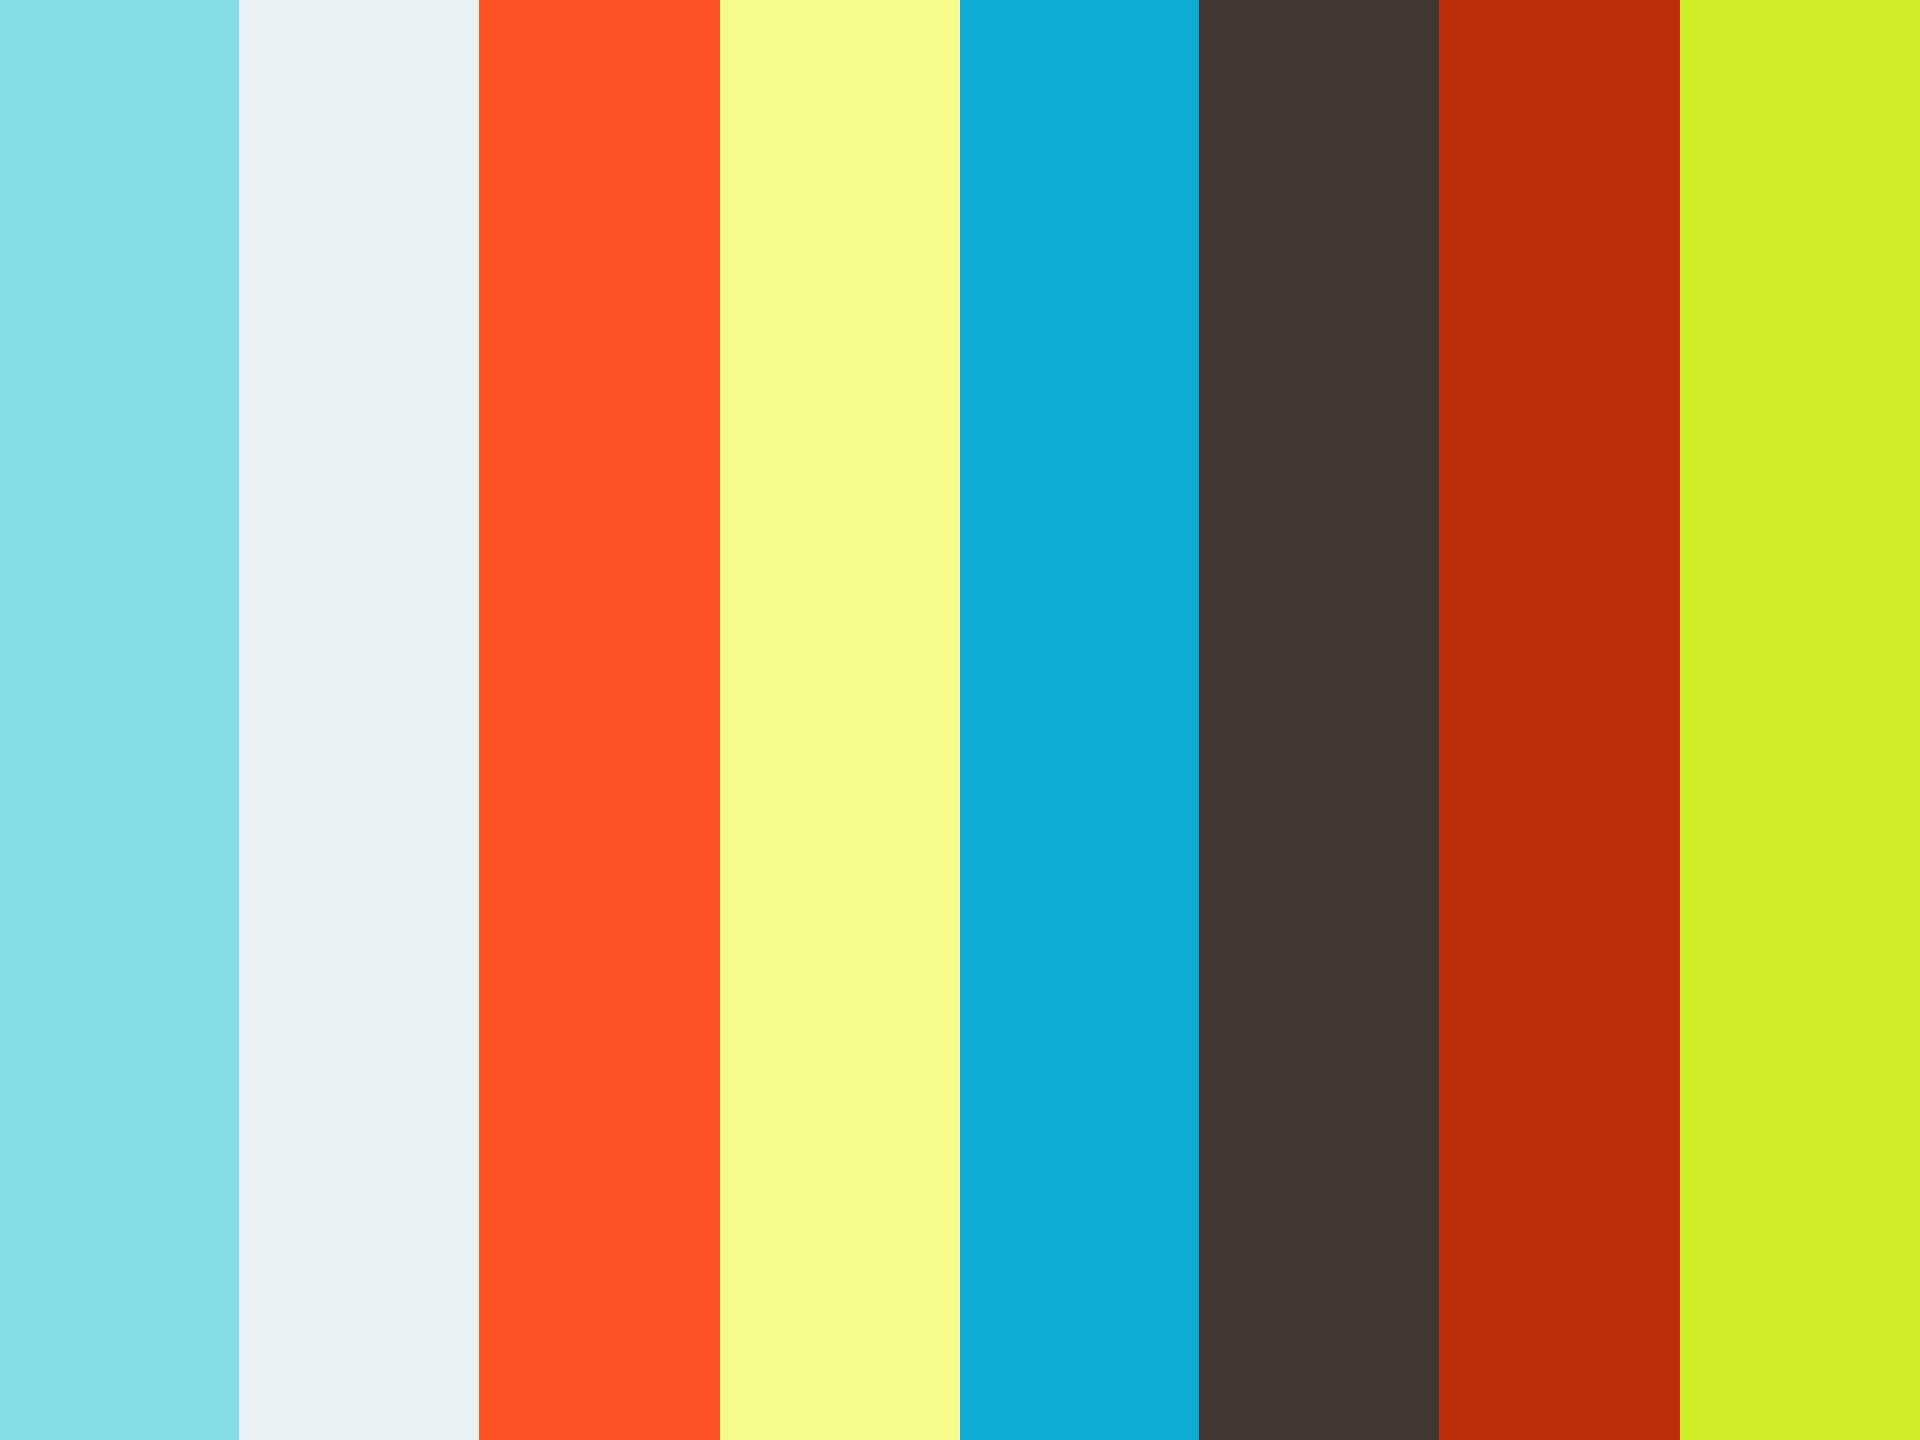 450081466?mwd19206mhd10806qd70 2010 jeep wrangler fuse box layout efcaviation com 2010 honda pilot fuse box diagram at mifinder.co